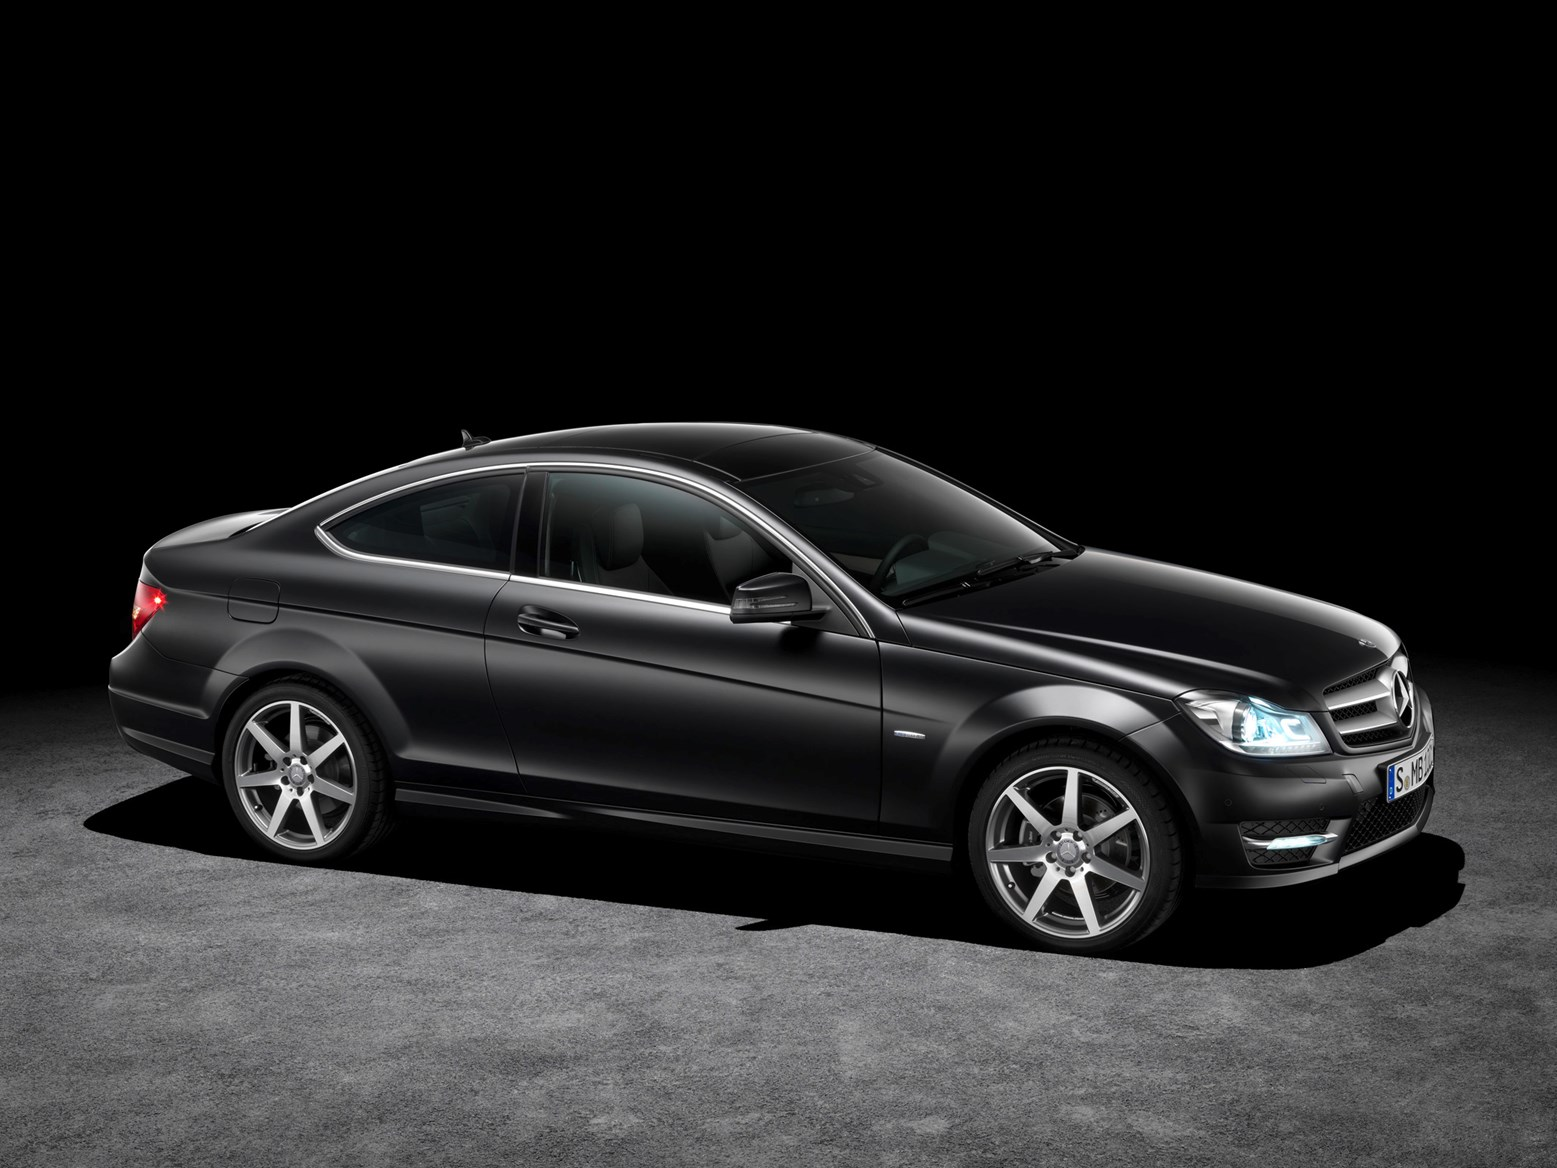 Mercedes Amg 2017 Fiyat >> Mercedes C Class Coupe 2014 Black | www.pixshark.com - Images Galleries With A Bite!